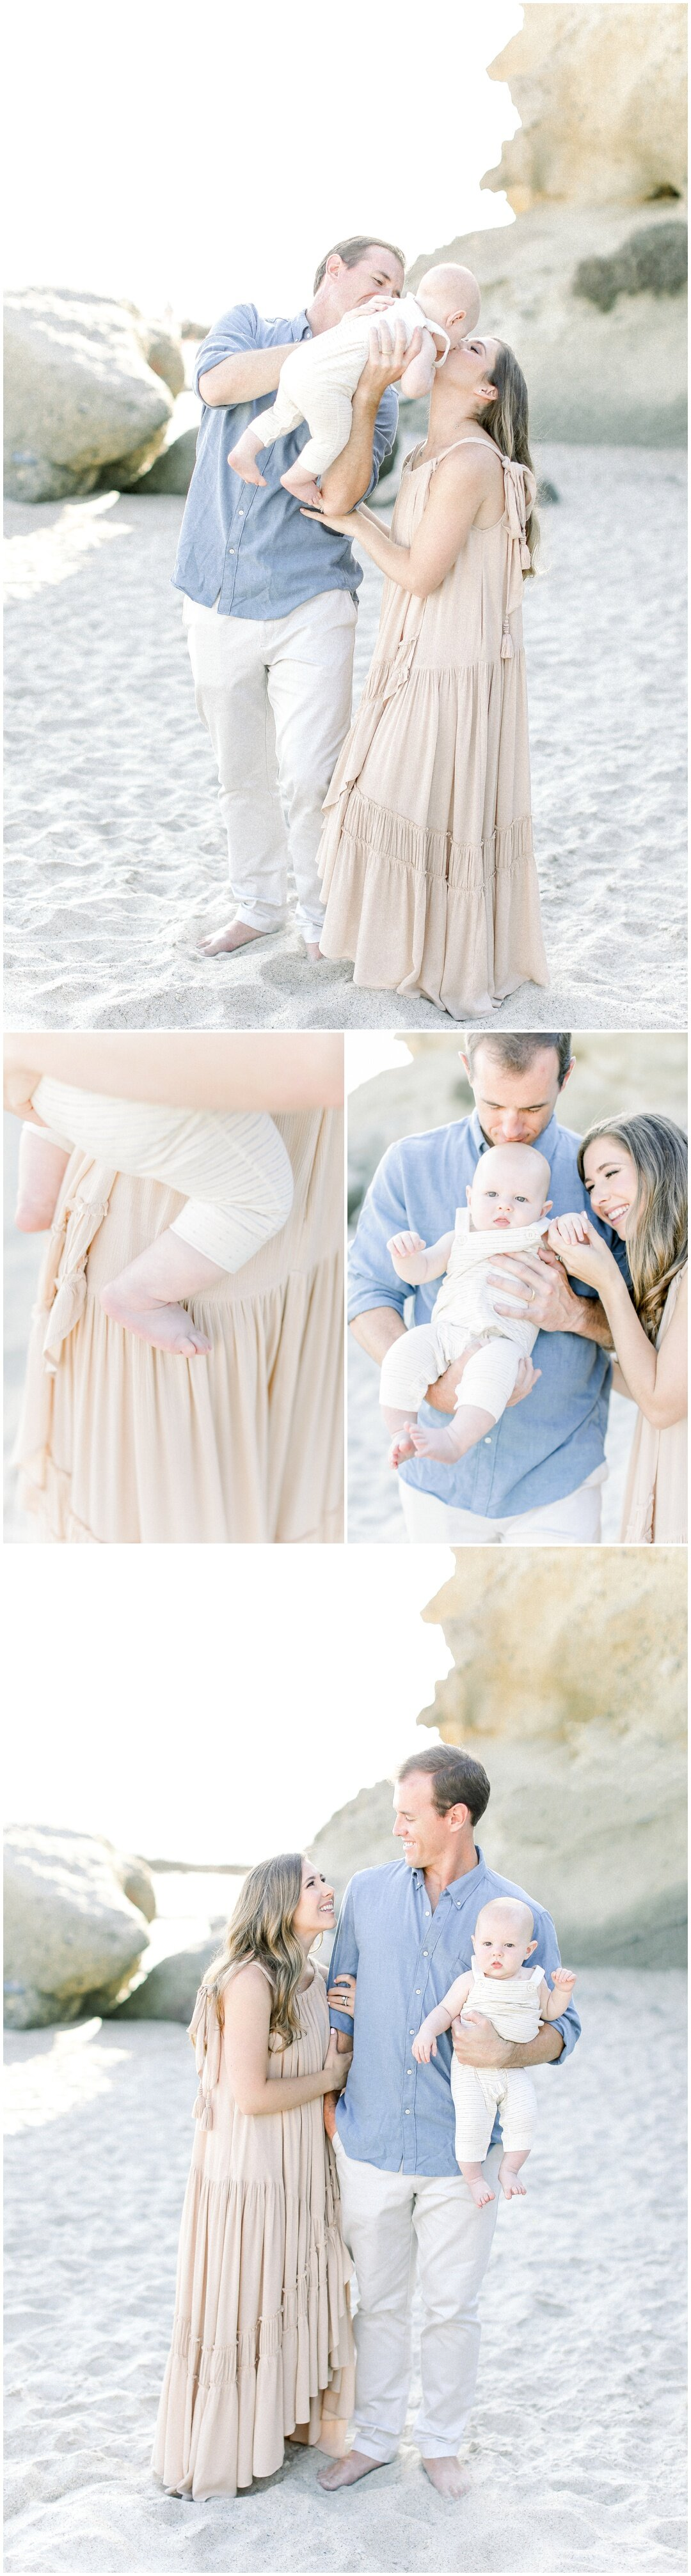 Newport+Beach+Newborn+Maternity+Photographer+Orange+County+Family+Photographer+Cori+Kleckner+Photography+Forgatch+Family+Matt+Kelley+Jack+Forgatch+_4413.jpg